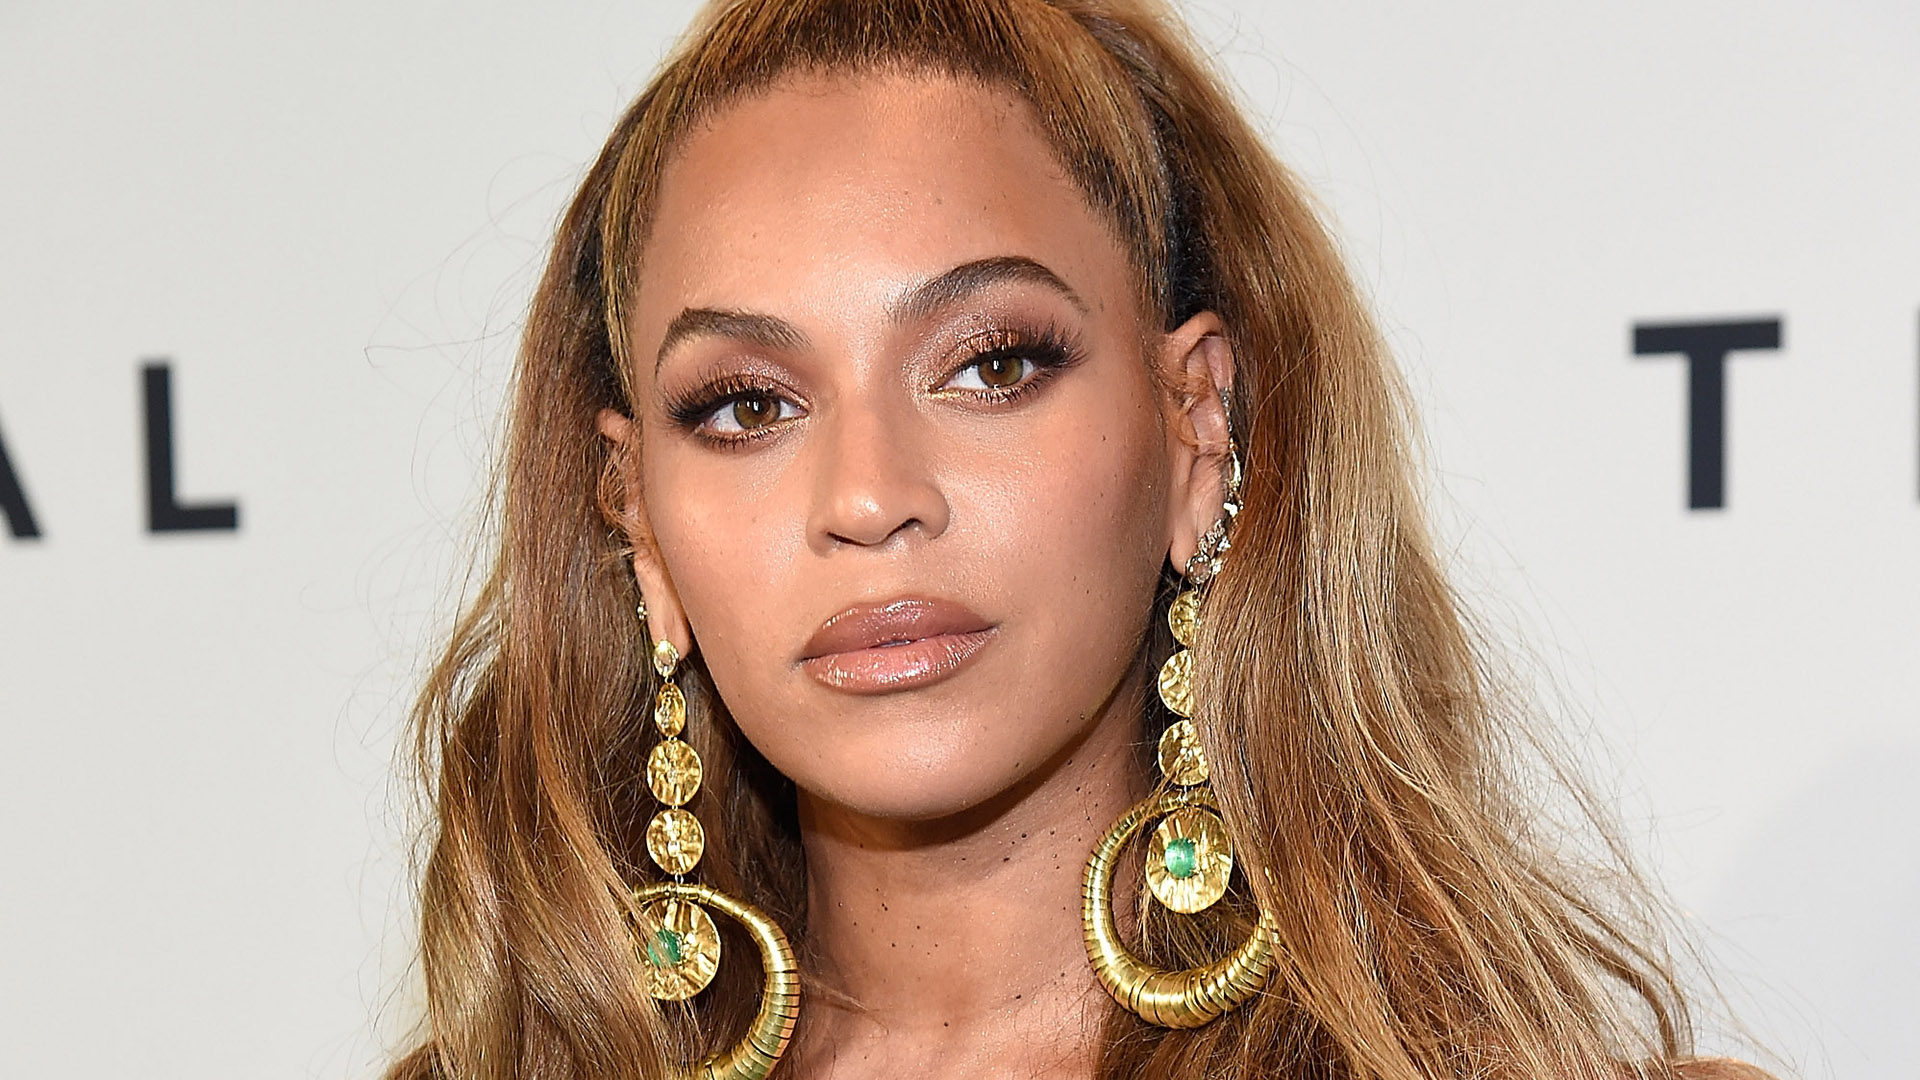 Beyoncé Hinted that She Has a Secret Snapchat, and Fans Are Going Wild